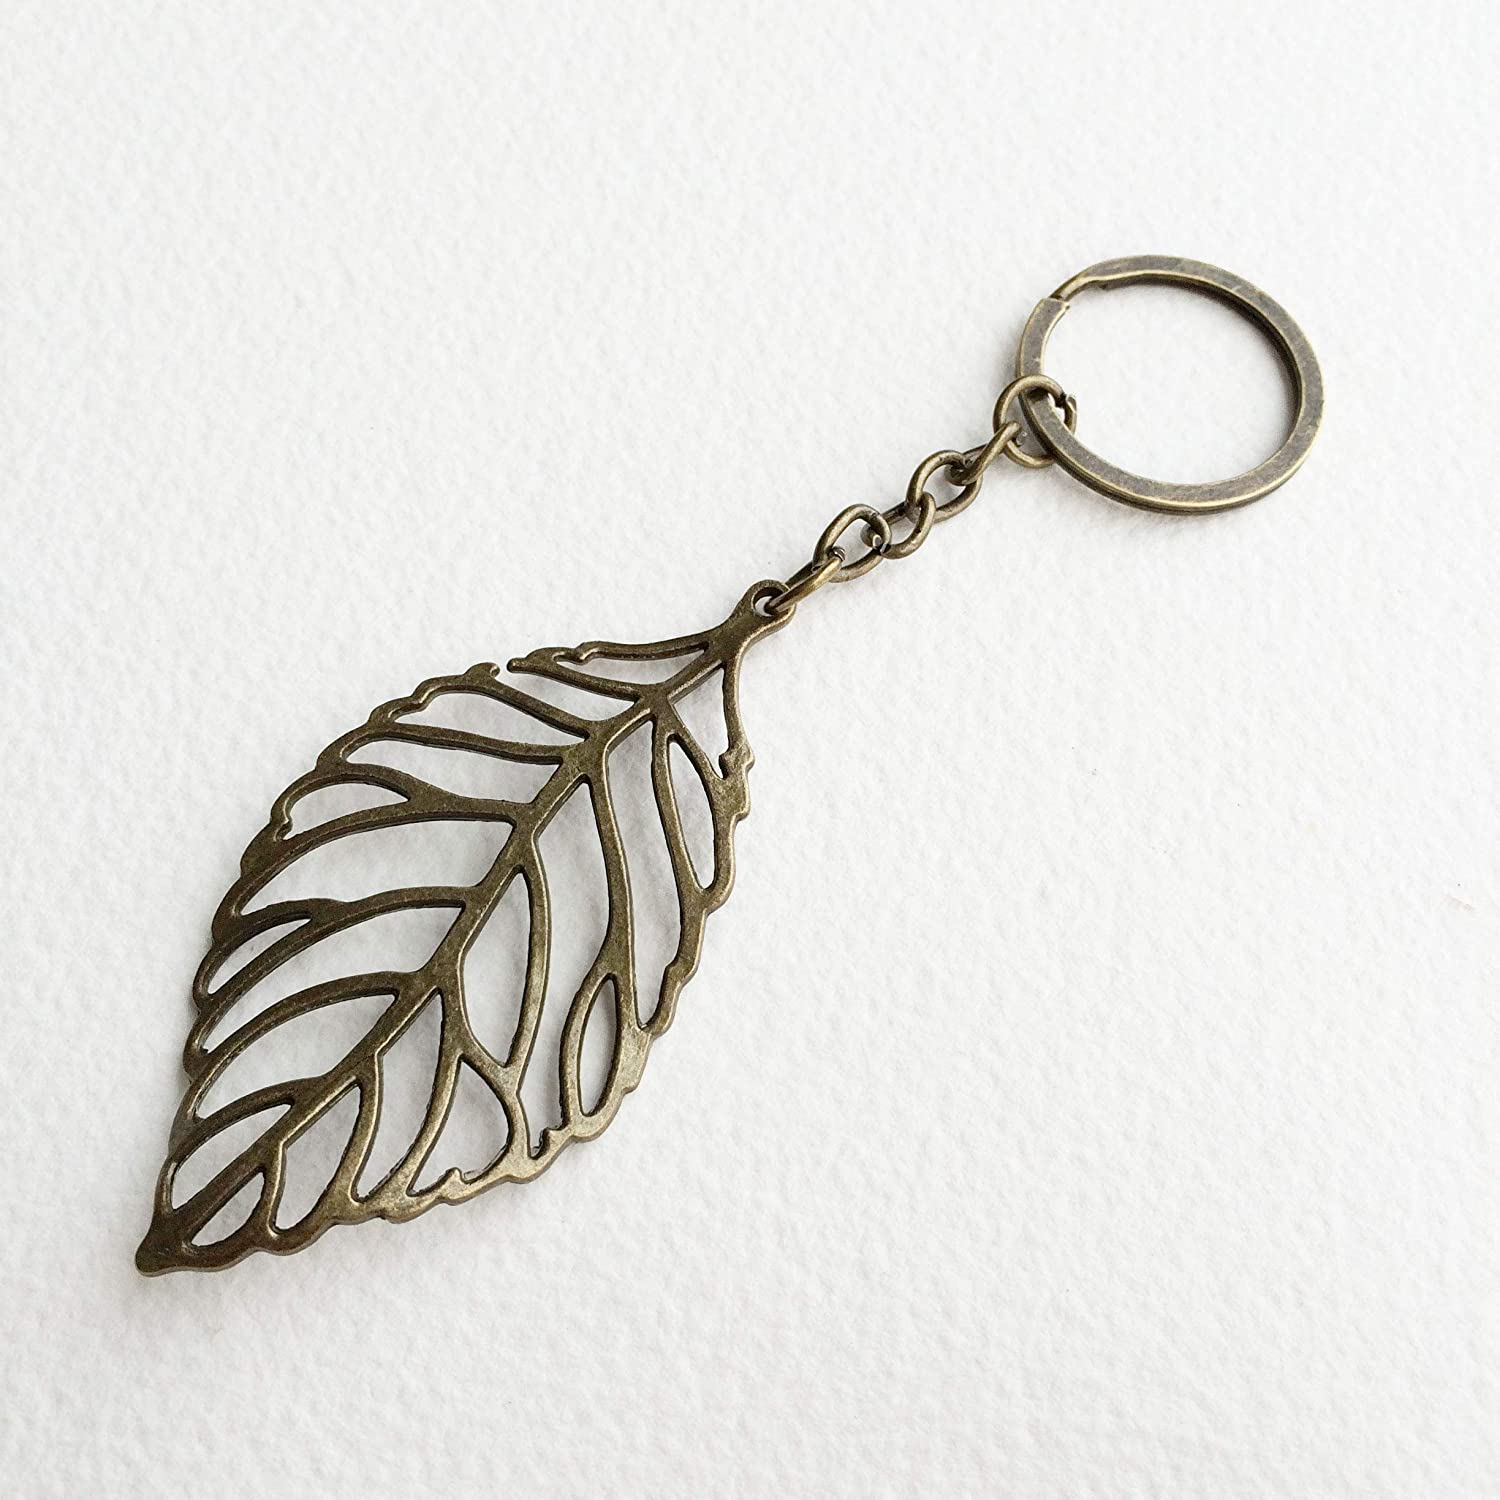 Leather Keyring Leather Accessories Feather appear Feather Keyring Feather Keychain Leather Keychain Key holder Leaf Keychain